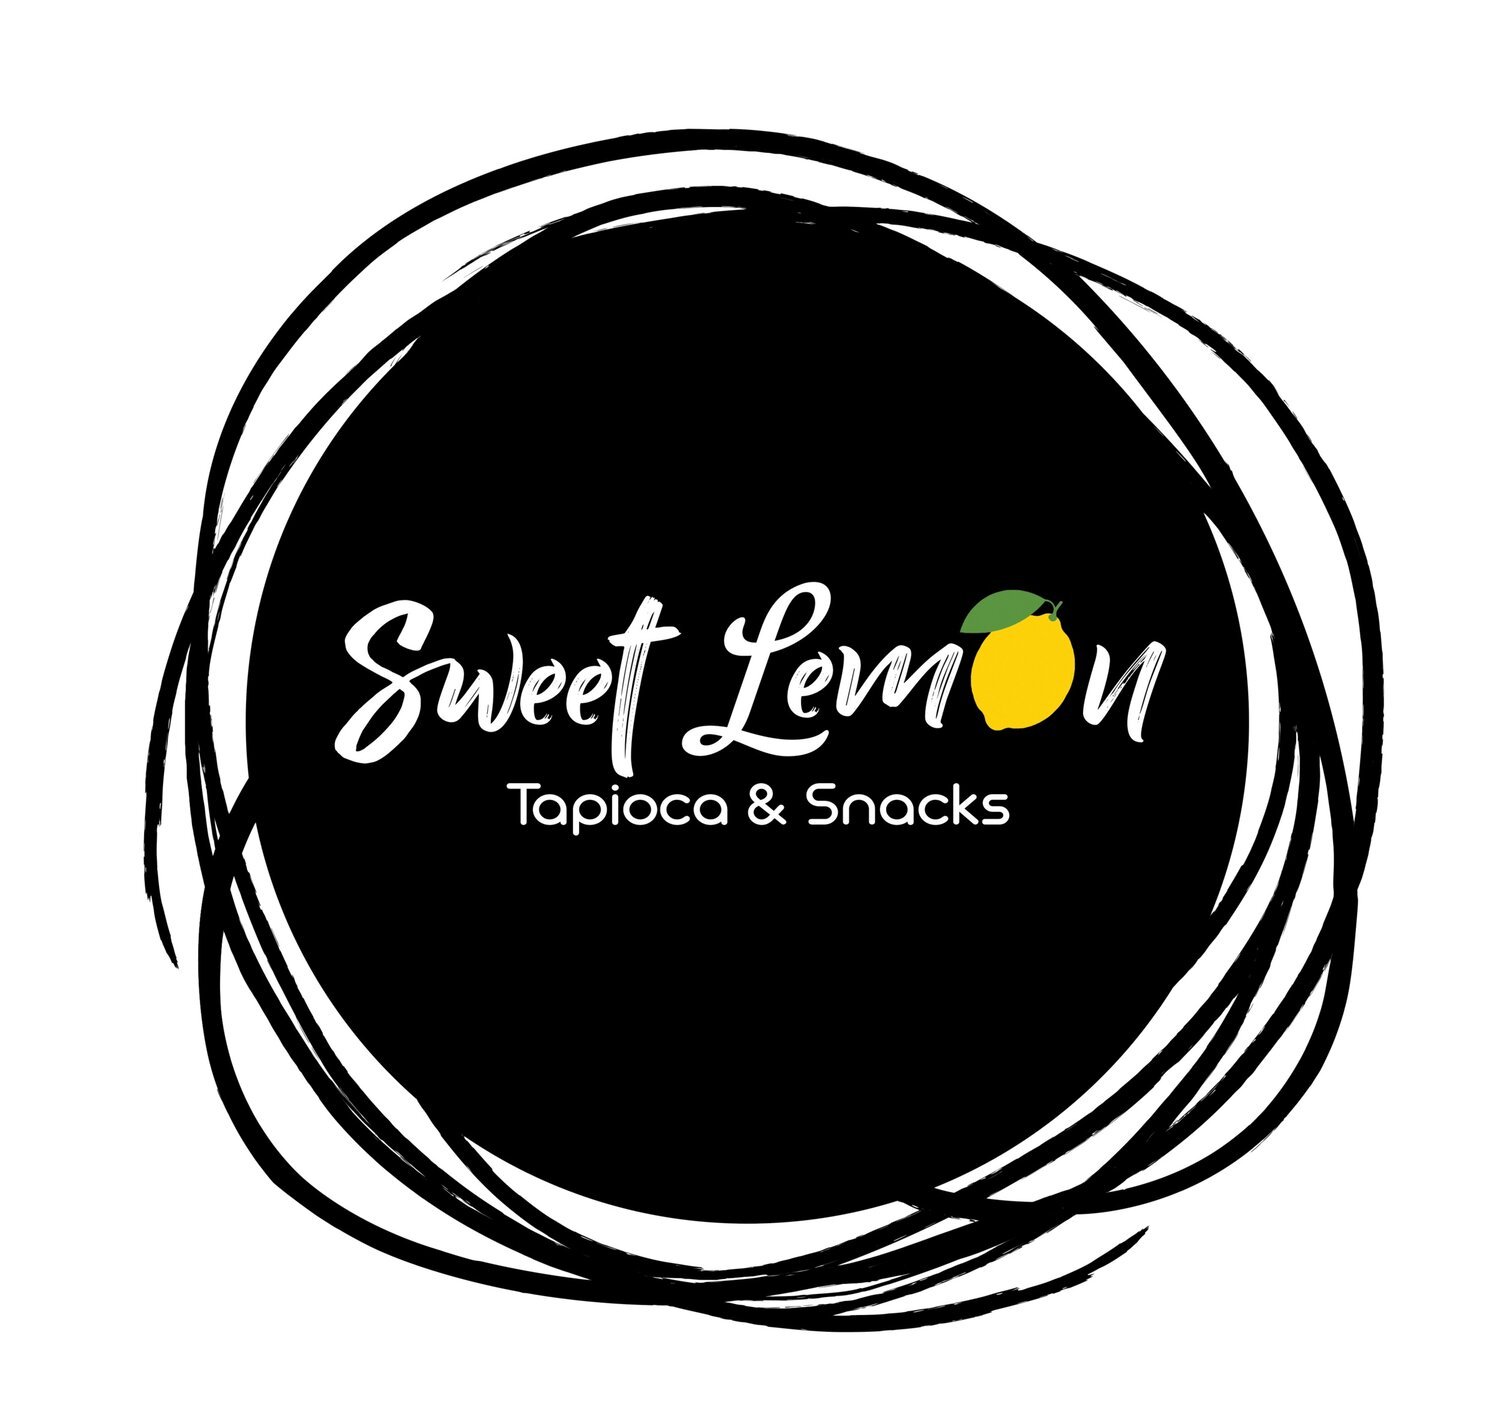 Sweet Lemon Tapioca & Snacks